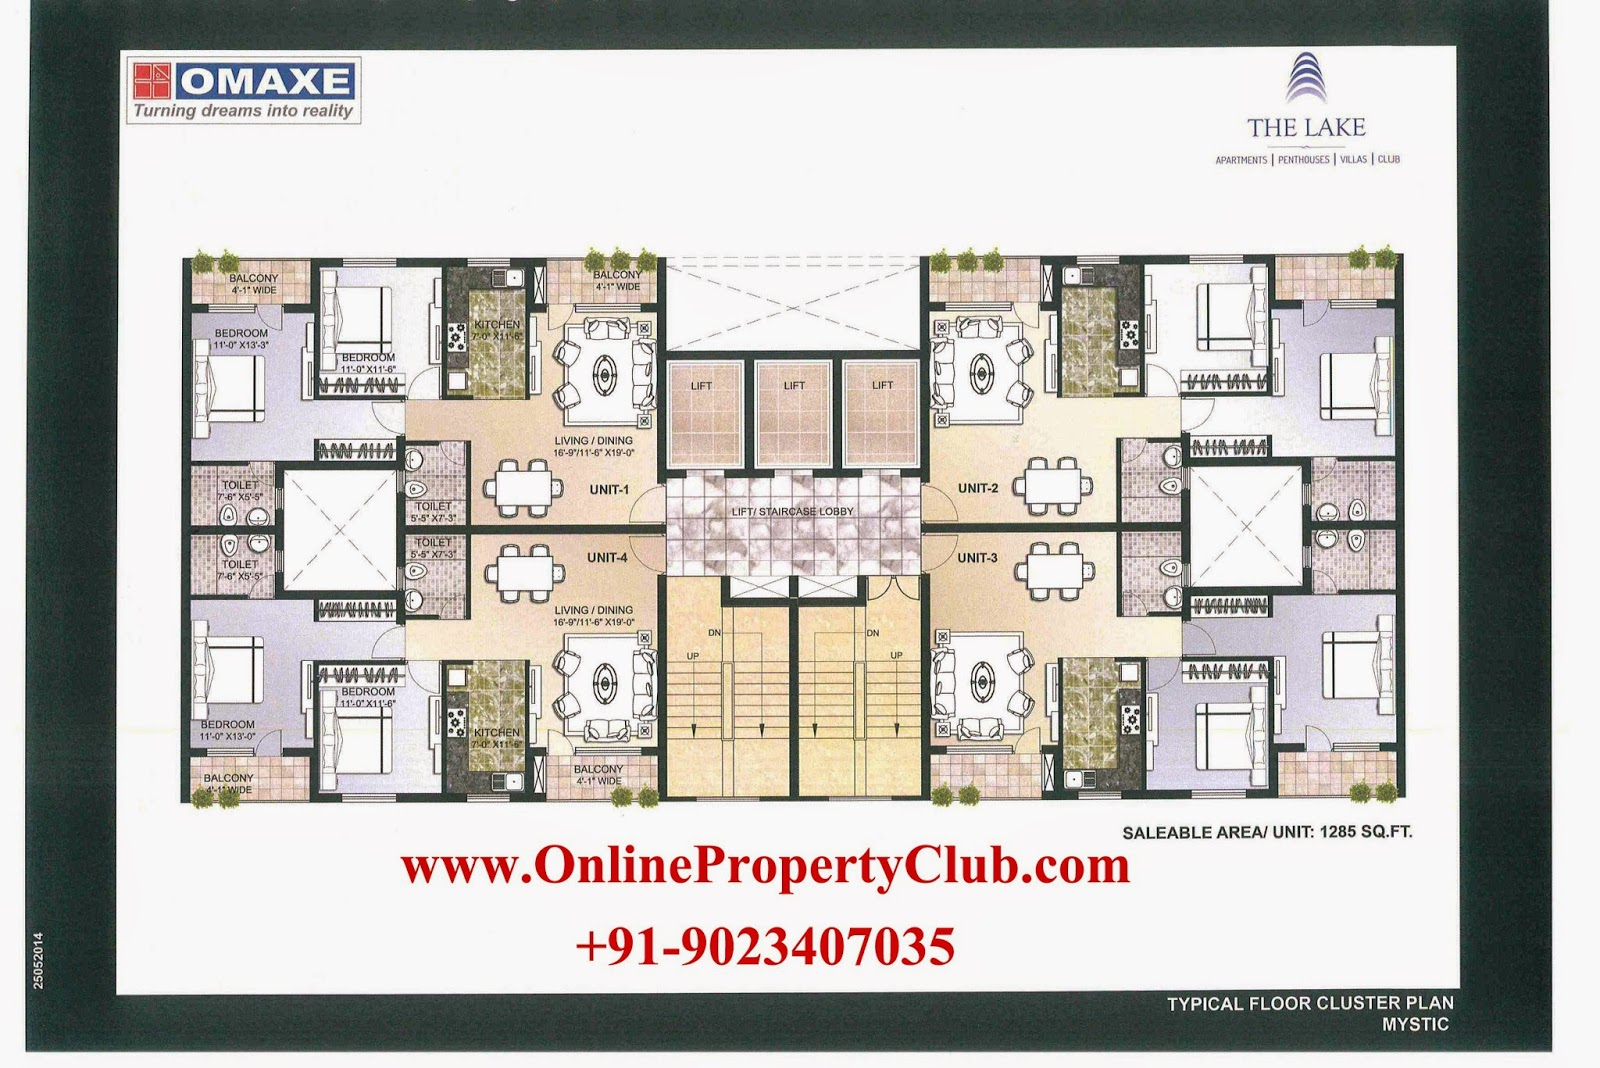 The Lake 2 3 4 Bhk Flats Apartments In Omaxe New Chandigarh Mullanpur